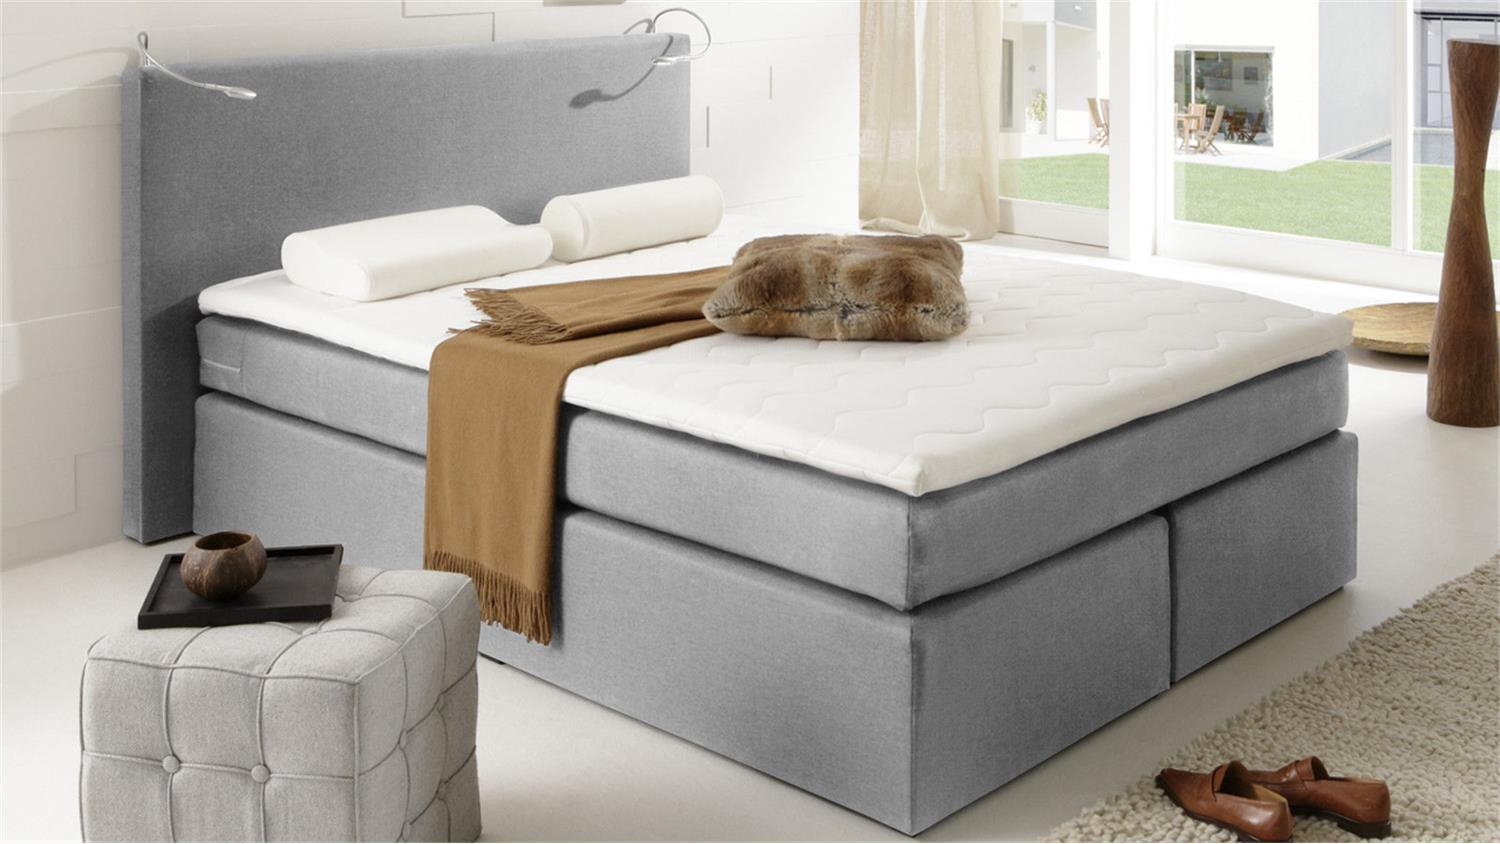 boxspringbett atlanta stoff grau 140x200 cm mit topper. Black Bedroom Furniture Sets. Home Design Ideas